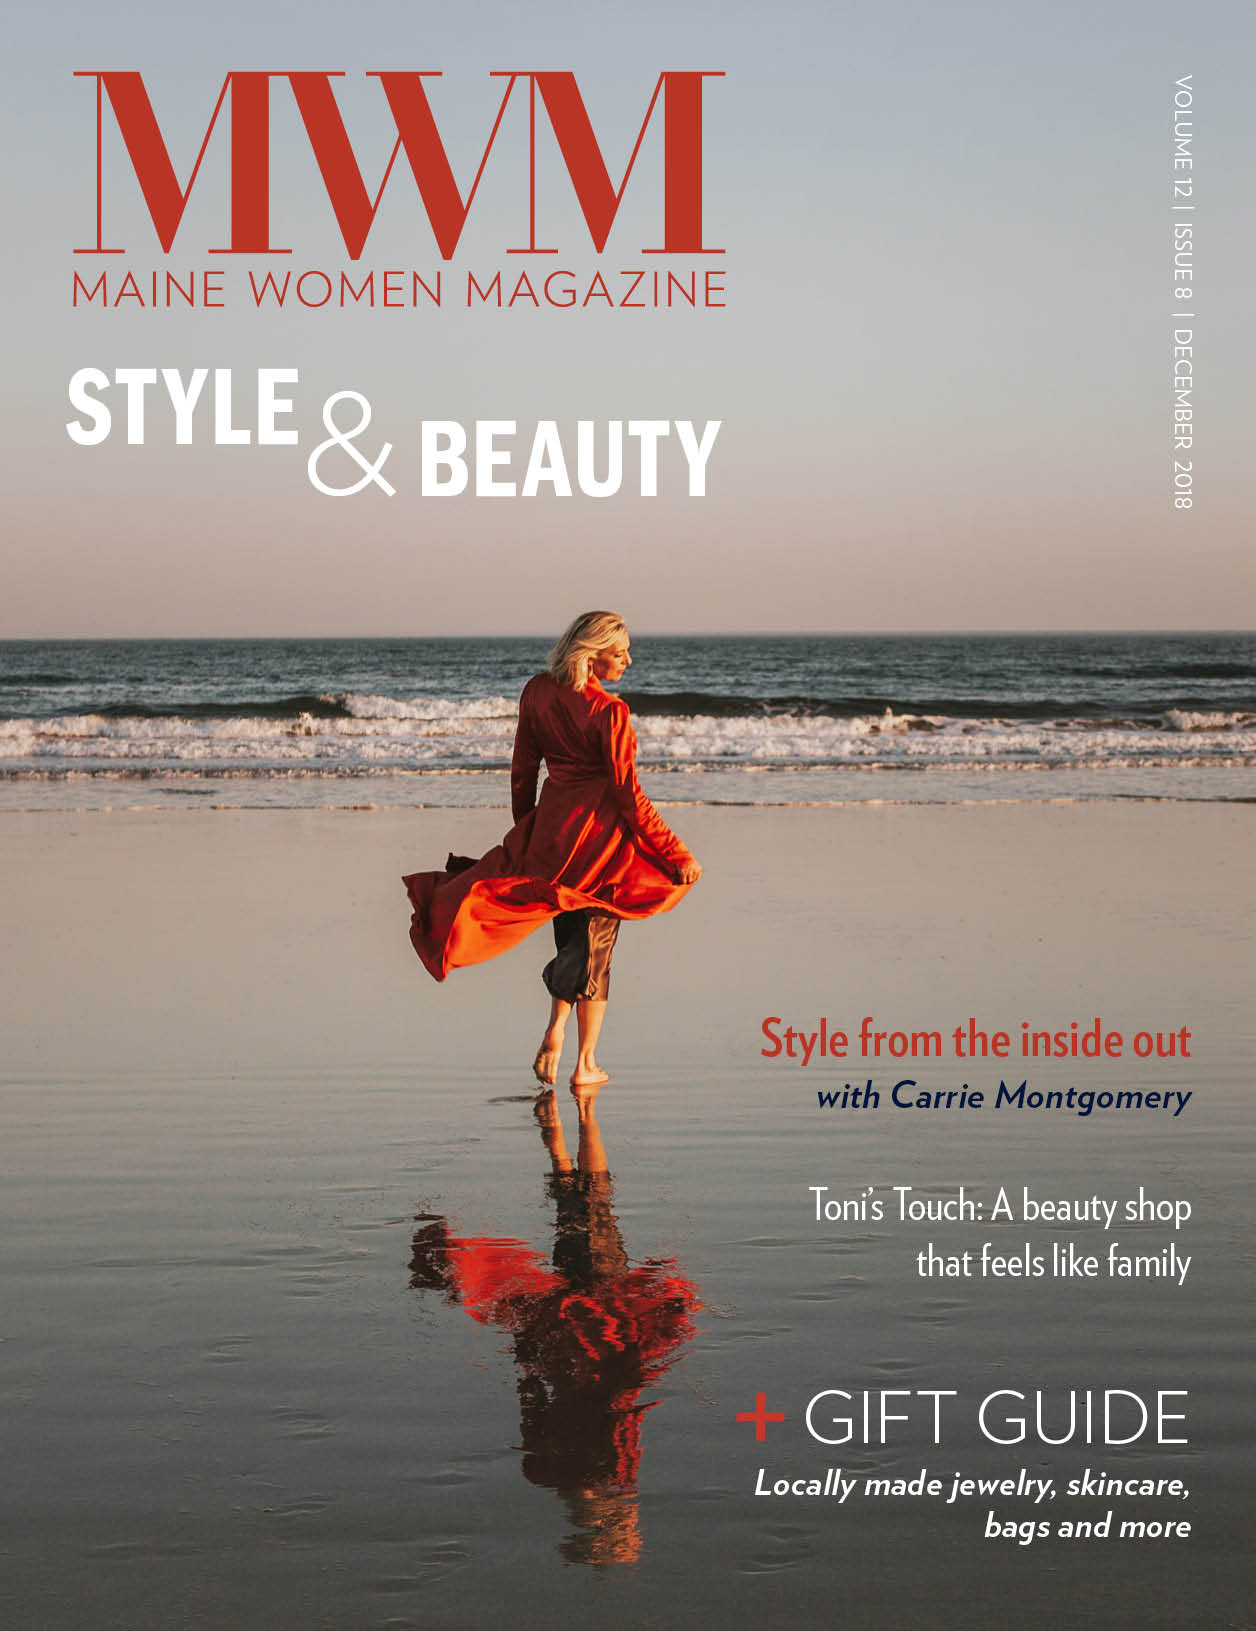 Maine Women Magazine Cover Editorial Photographer Heidi Kirn.jpg